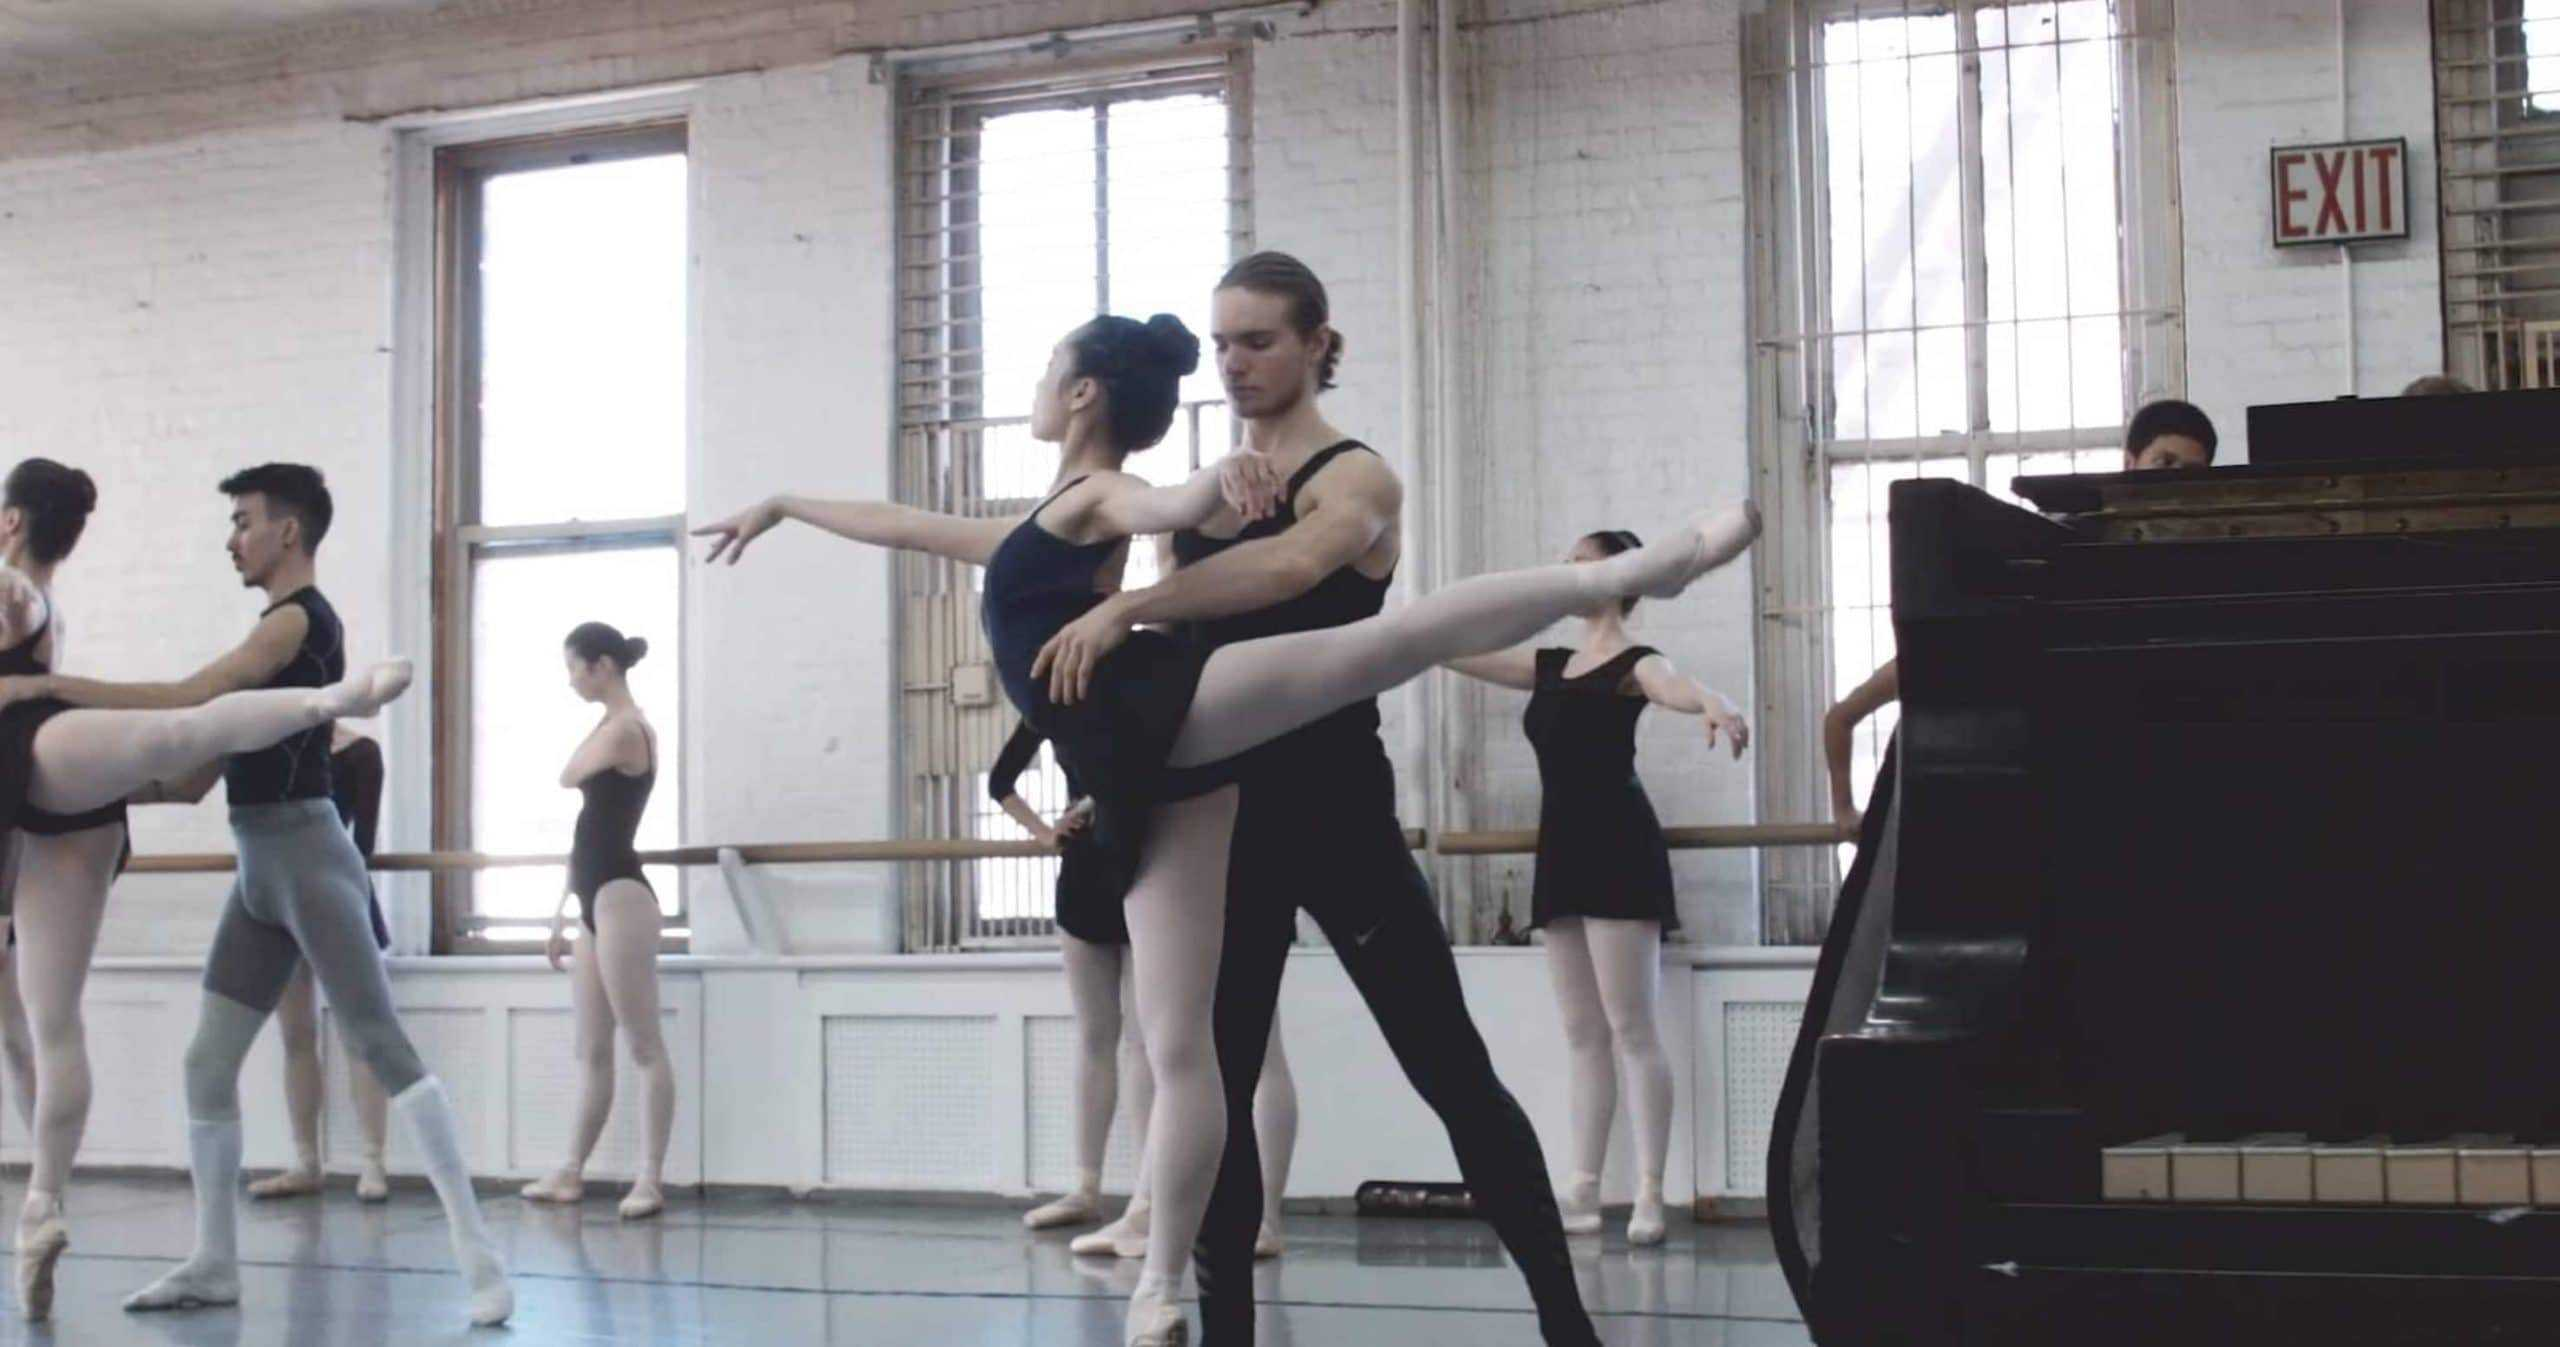 Settings_-_Joffrey_Ballet_School_-_Trainee_Program___Become_A_Trainee___Full_Video